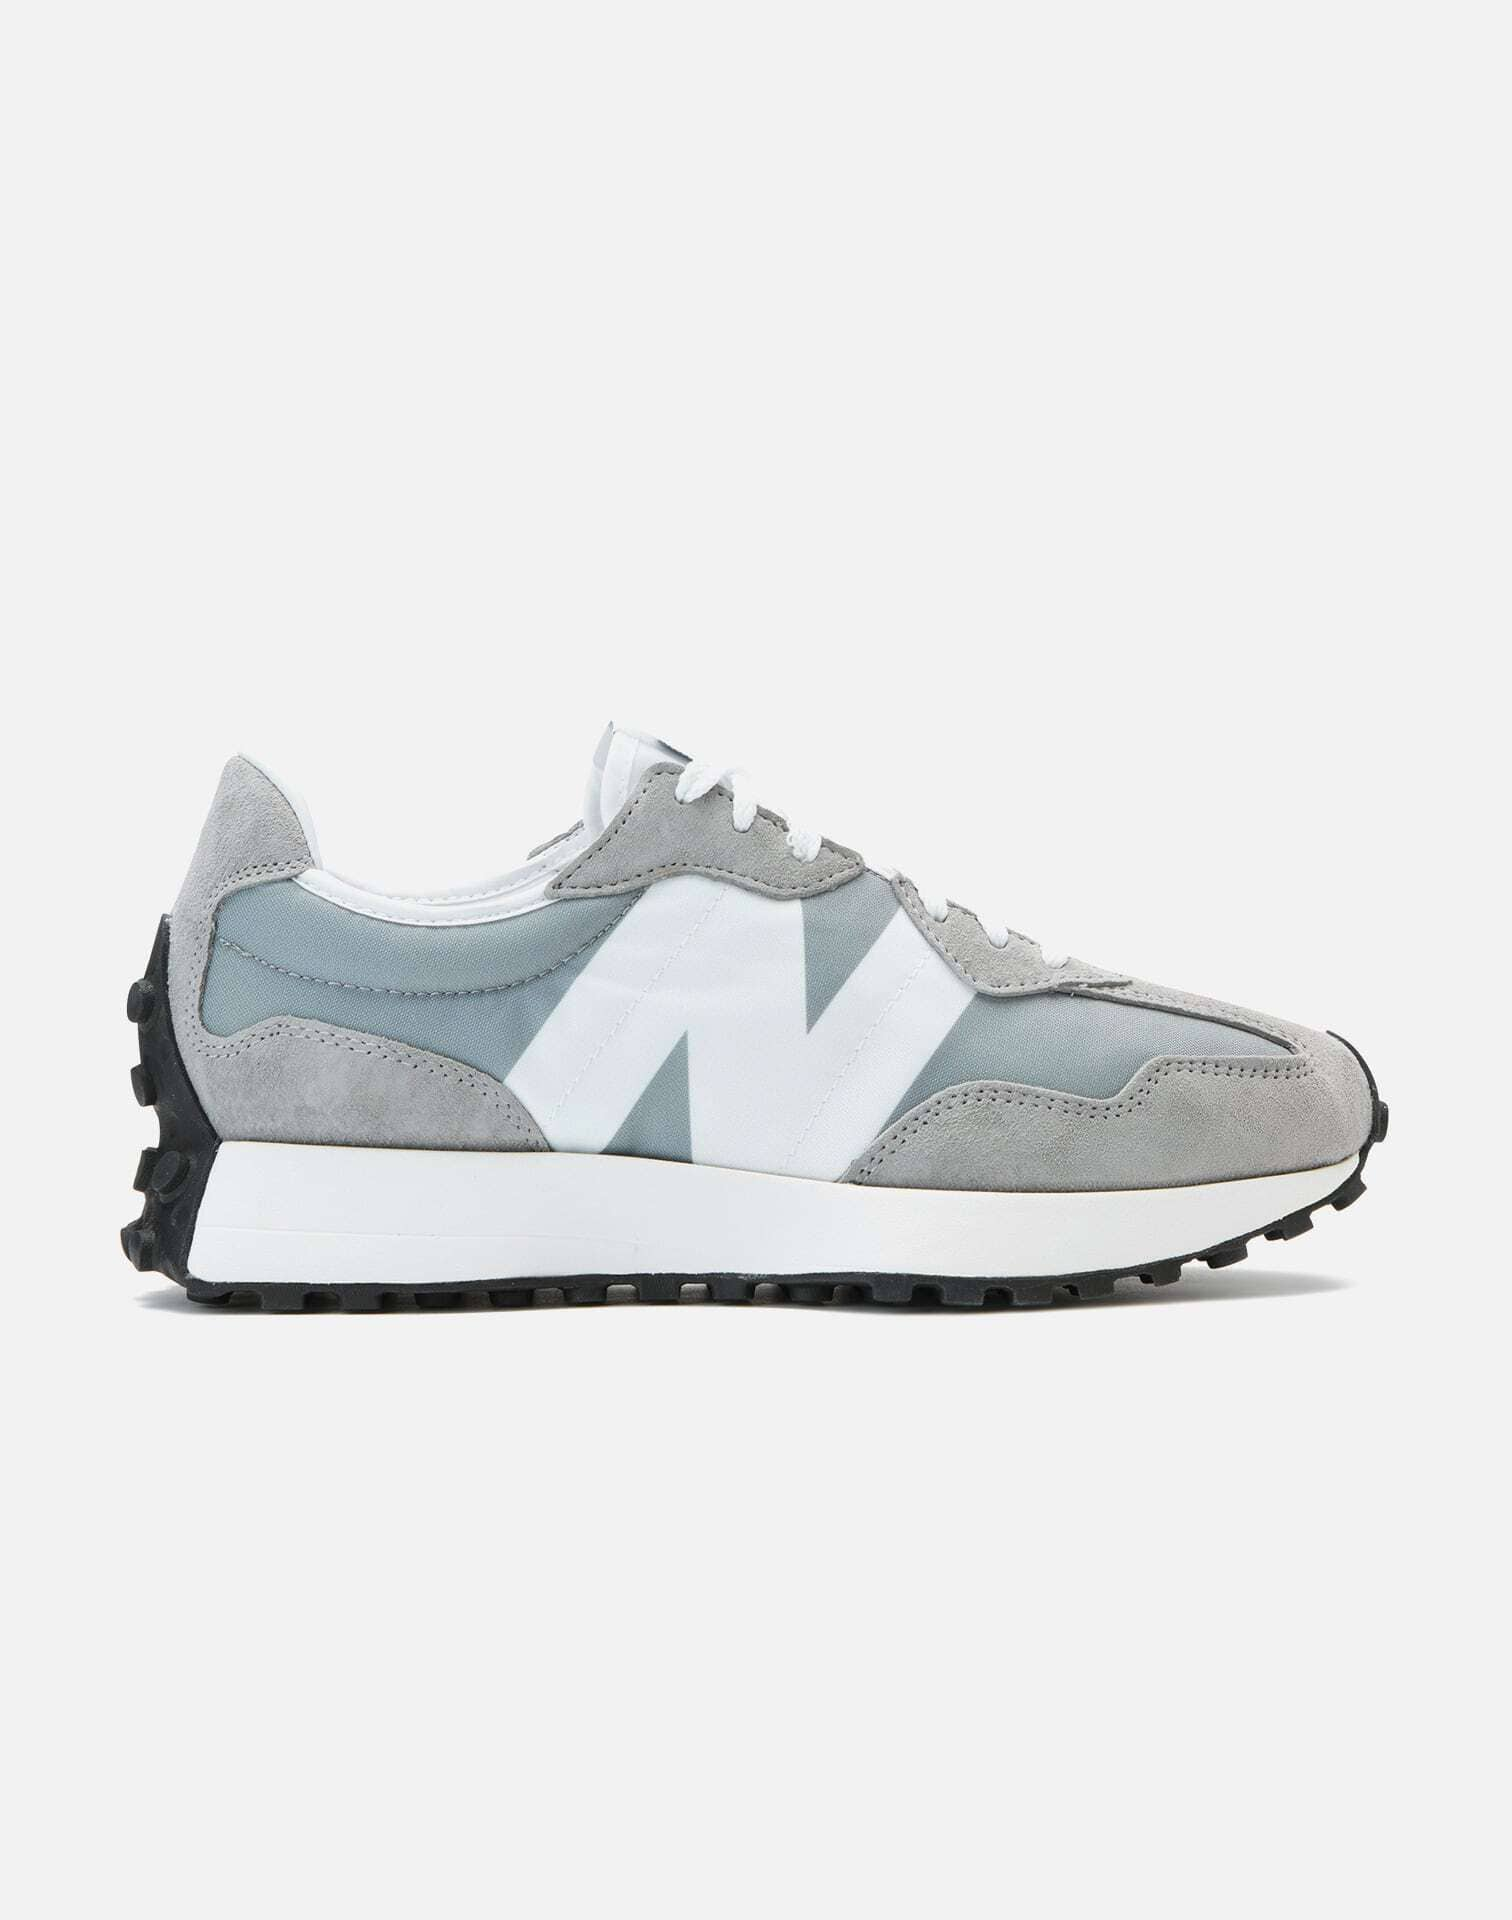 NewBalance CASABLANCA TENNIS CLUB 327